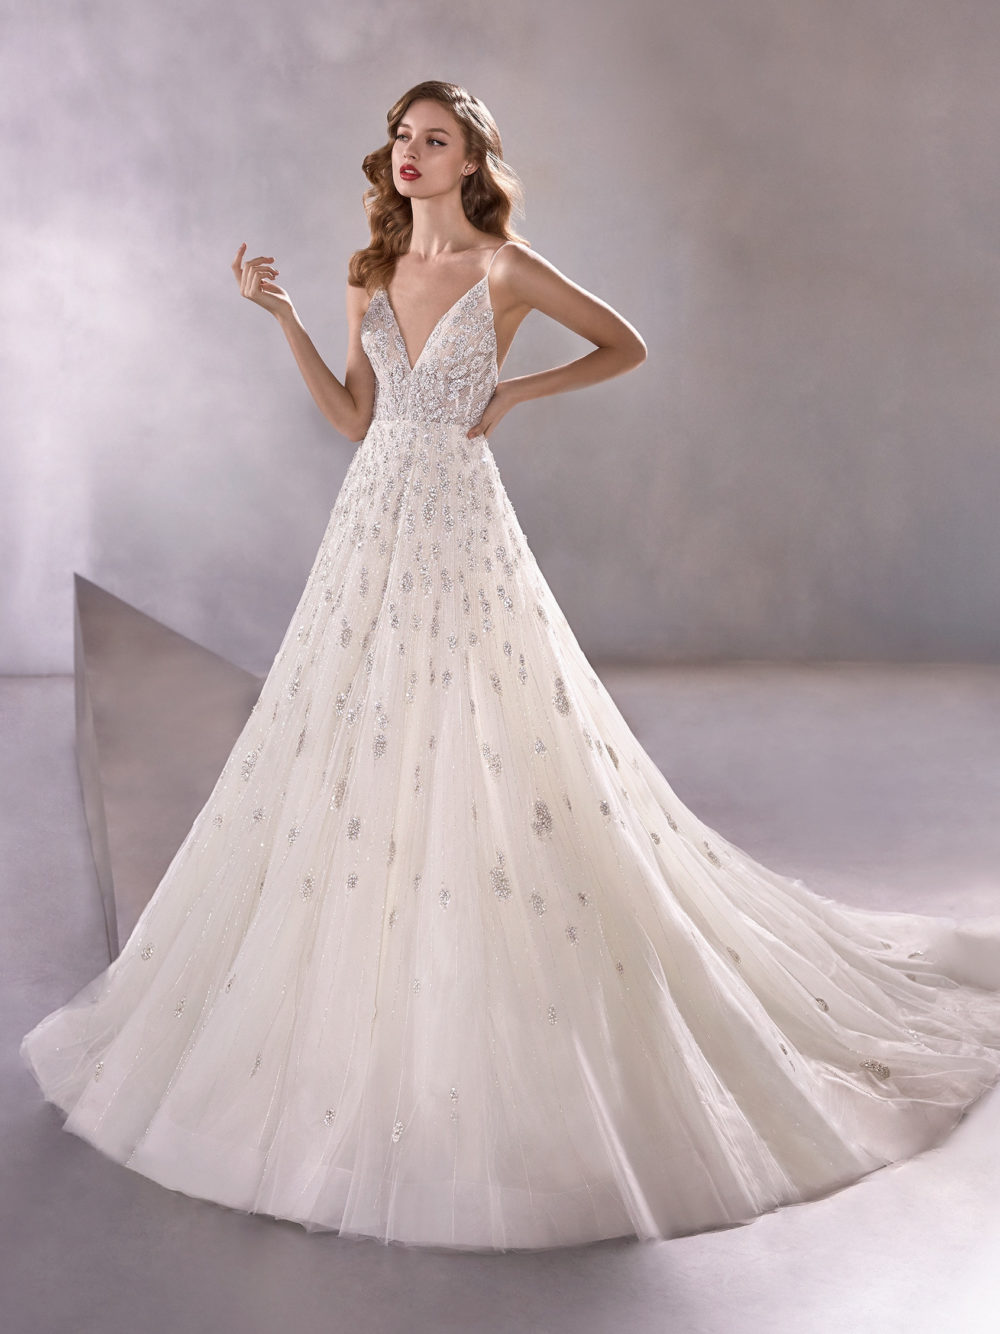 Pronovias Shining Star Wedding Gown Dress 2020 Atelier Collection